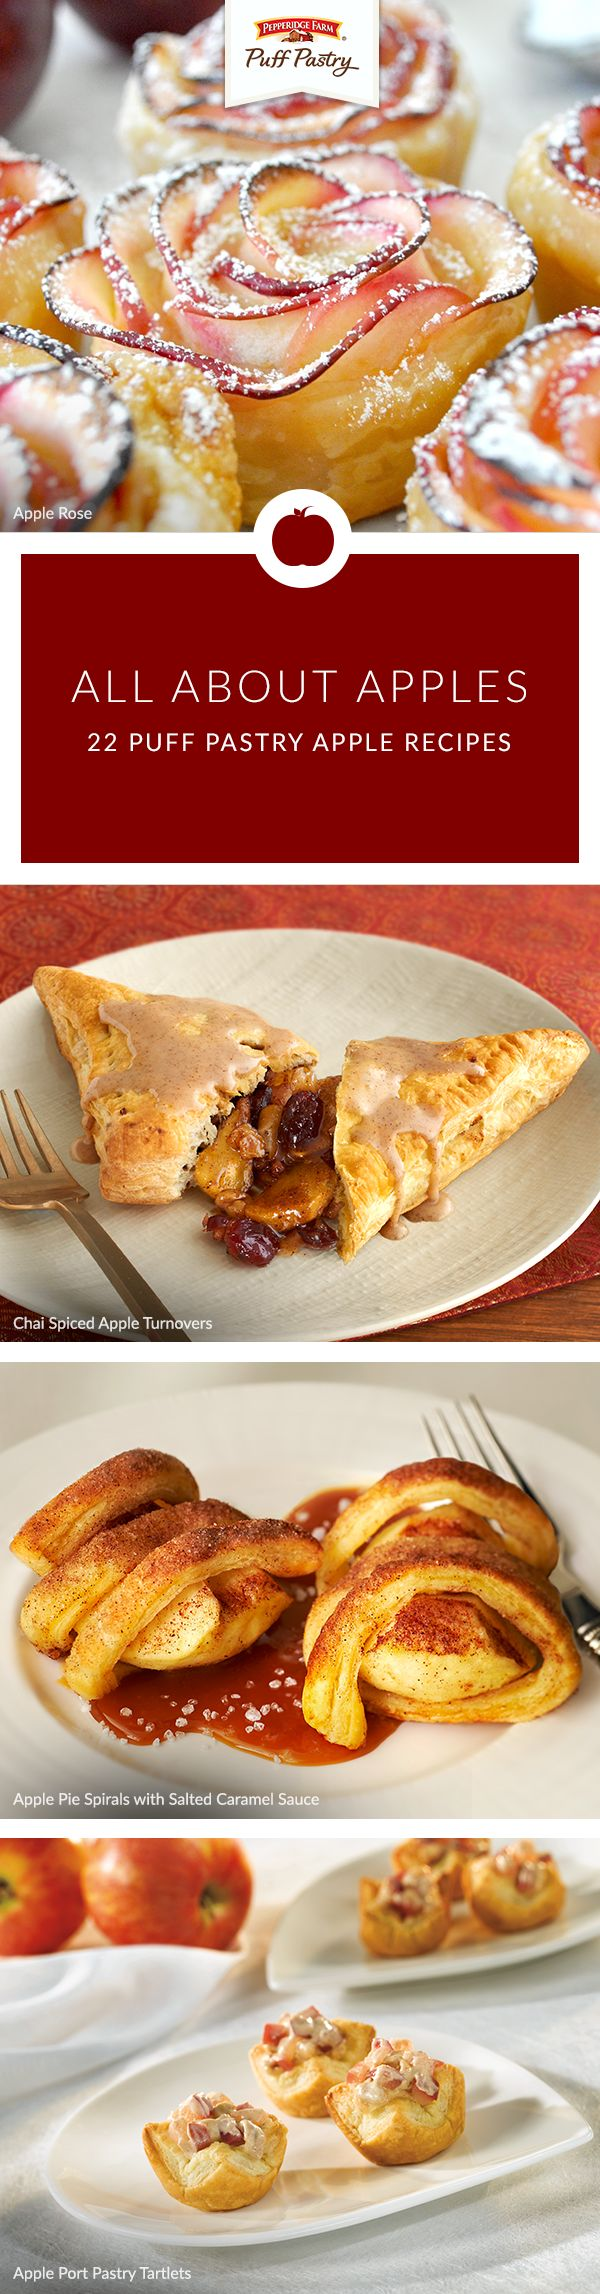 Nothing is better than fresh apples. Give them the love they deserve with these fantastic Puff Pastry apple recipes. Turn those turnovers up a notch with Chai Spiced Apple Turnovers, decorate the dinner table with Apple Roses or try a twist on apple pie with our Apple Pie Spirals with Salted Caramel Sauce.